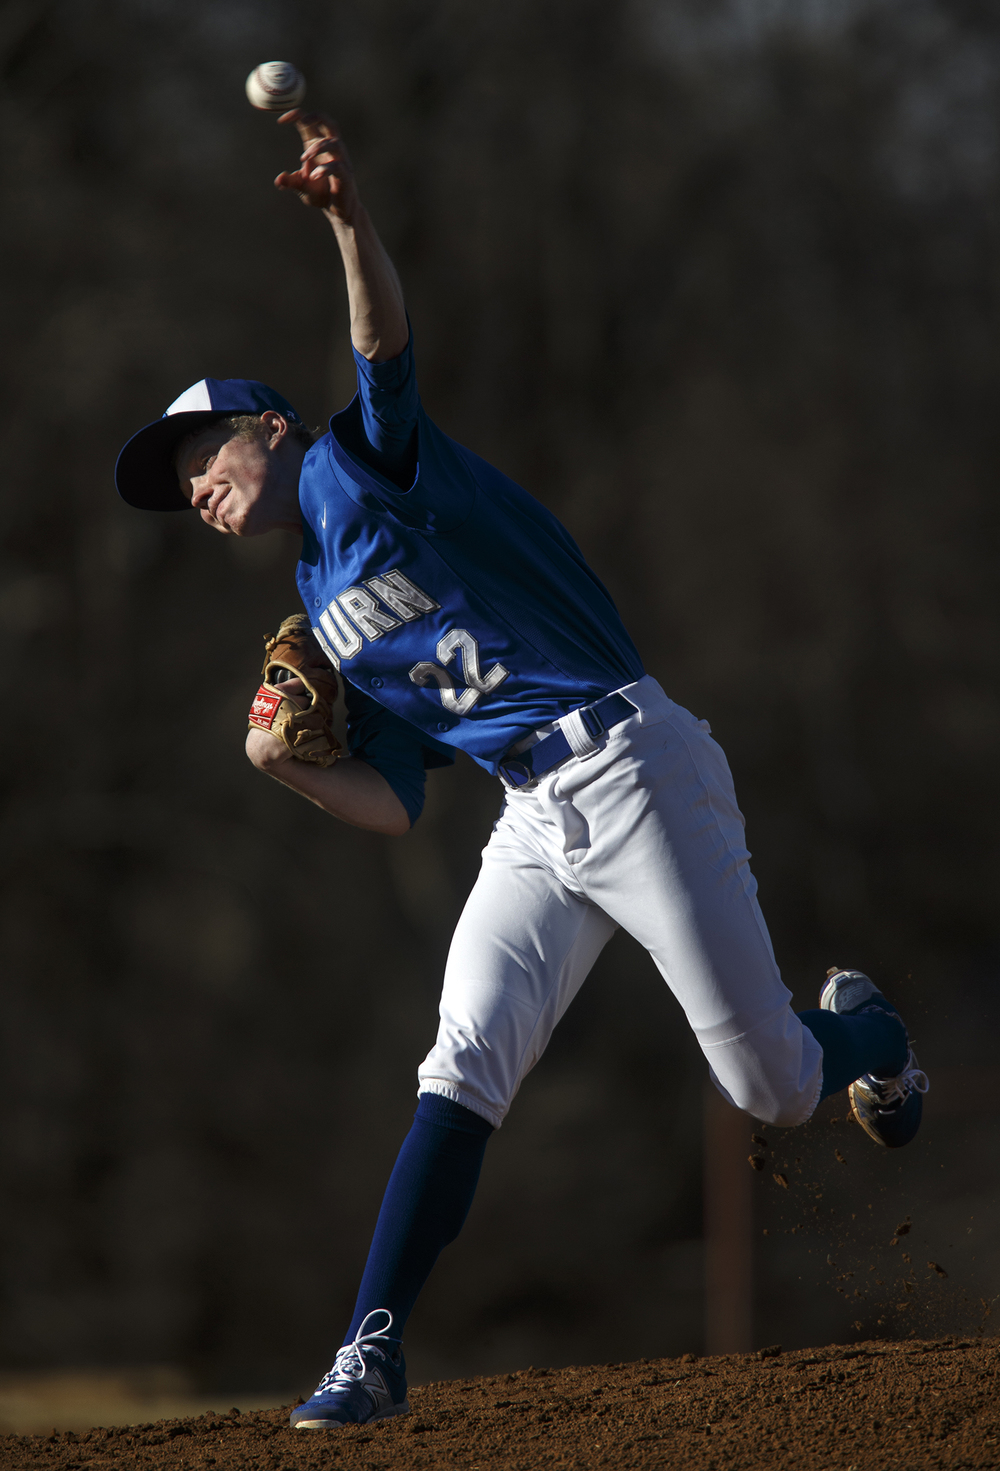 Auburn's Tristan Weaver pitches against Lanphier at Lincoln Land Community College Monday, March 16, 2015. Ted Schurter/The State Journal-Register